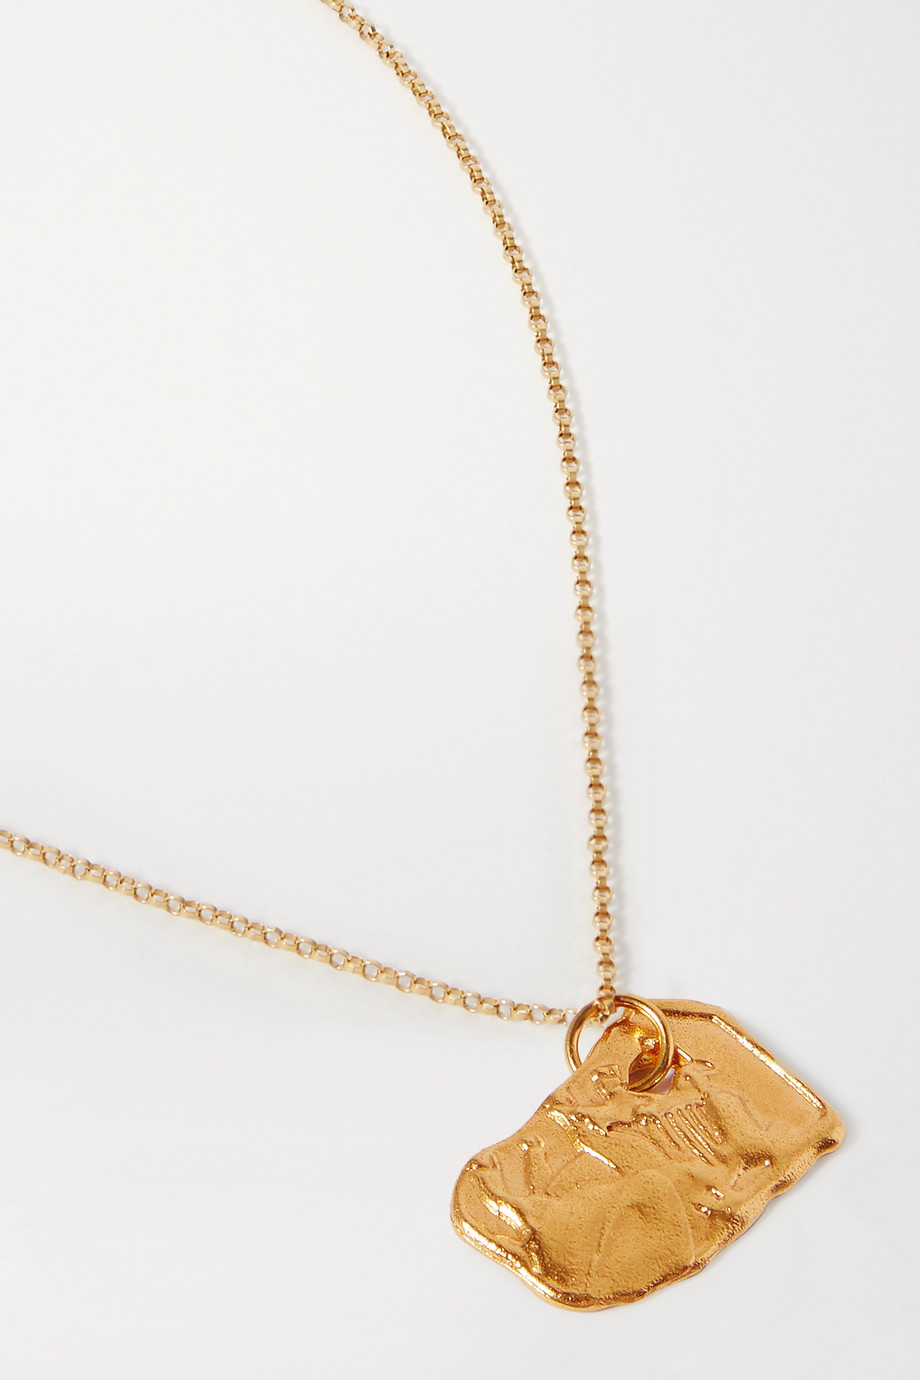 Alighieri Year of the Ox gold-plated necklace